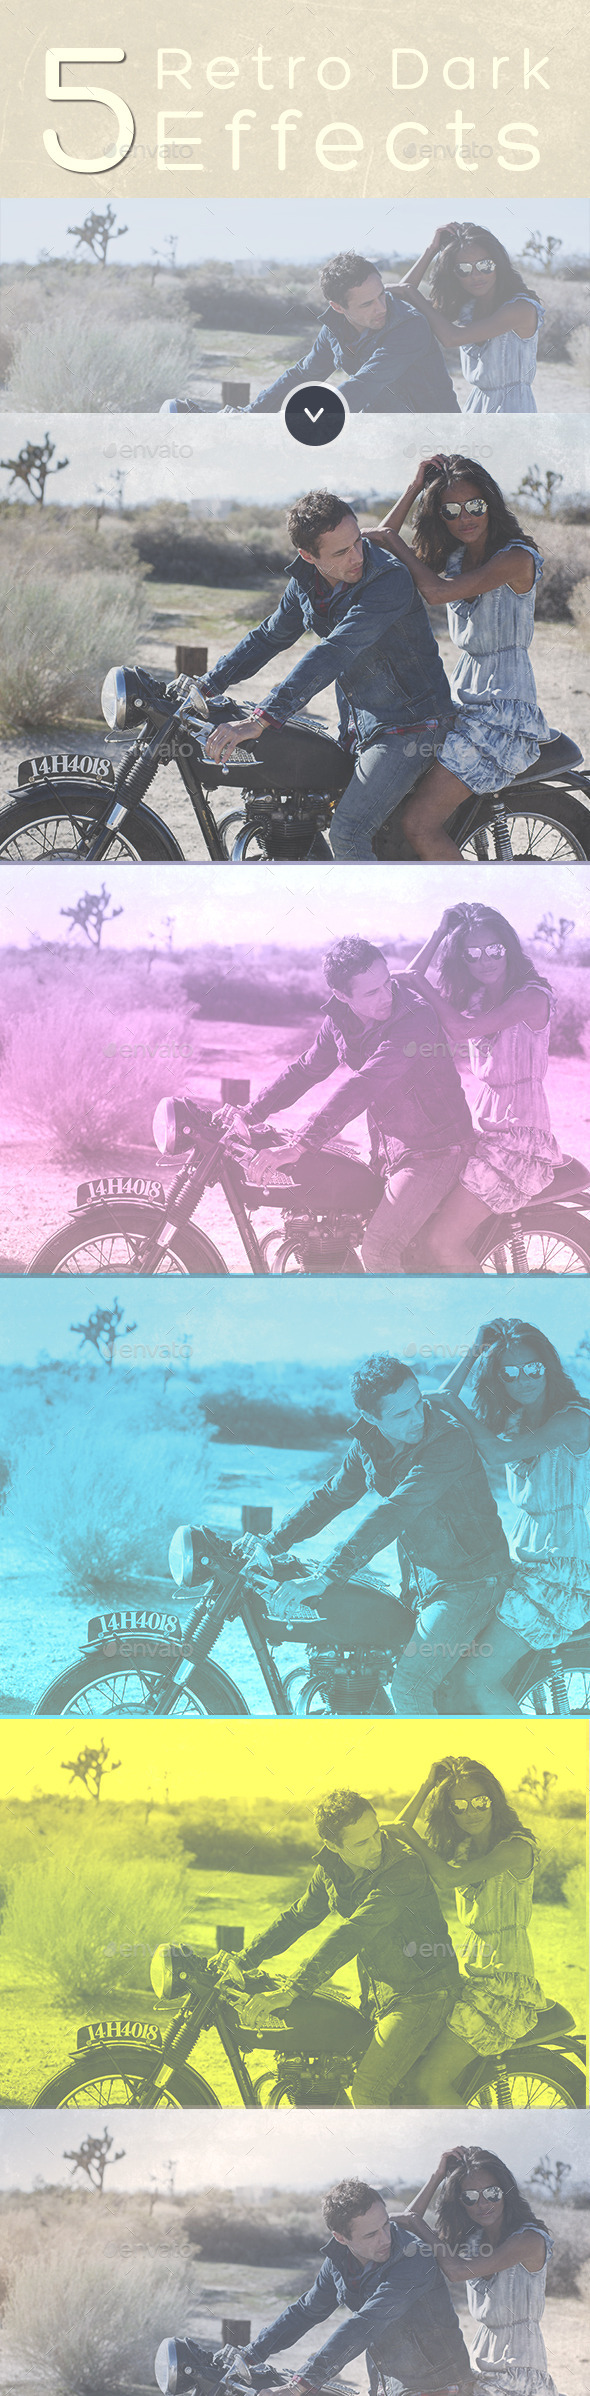 Retro Effects - Photoshop Template - Photo Templates Graphics